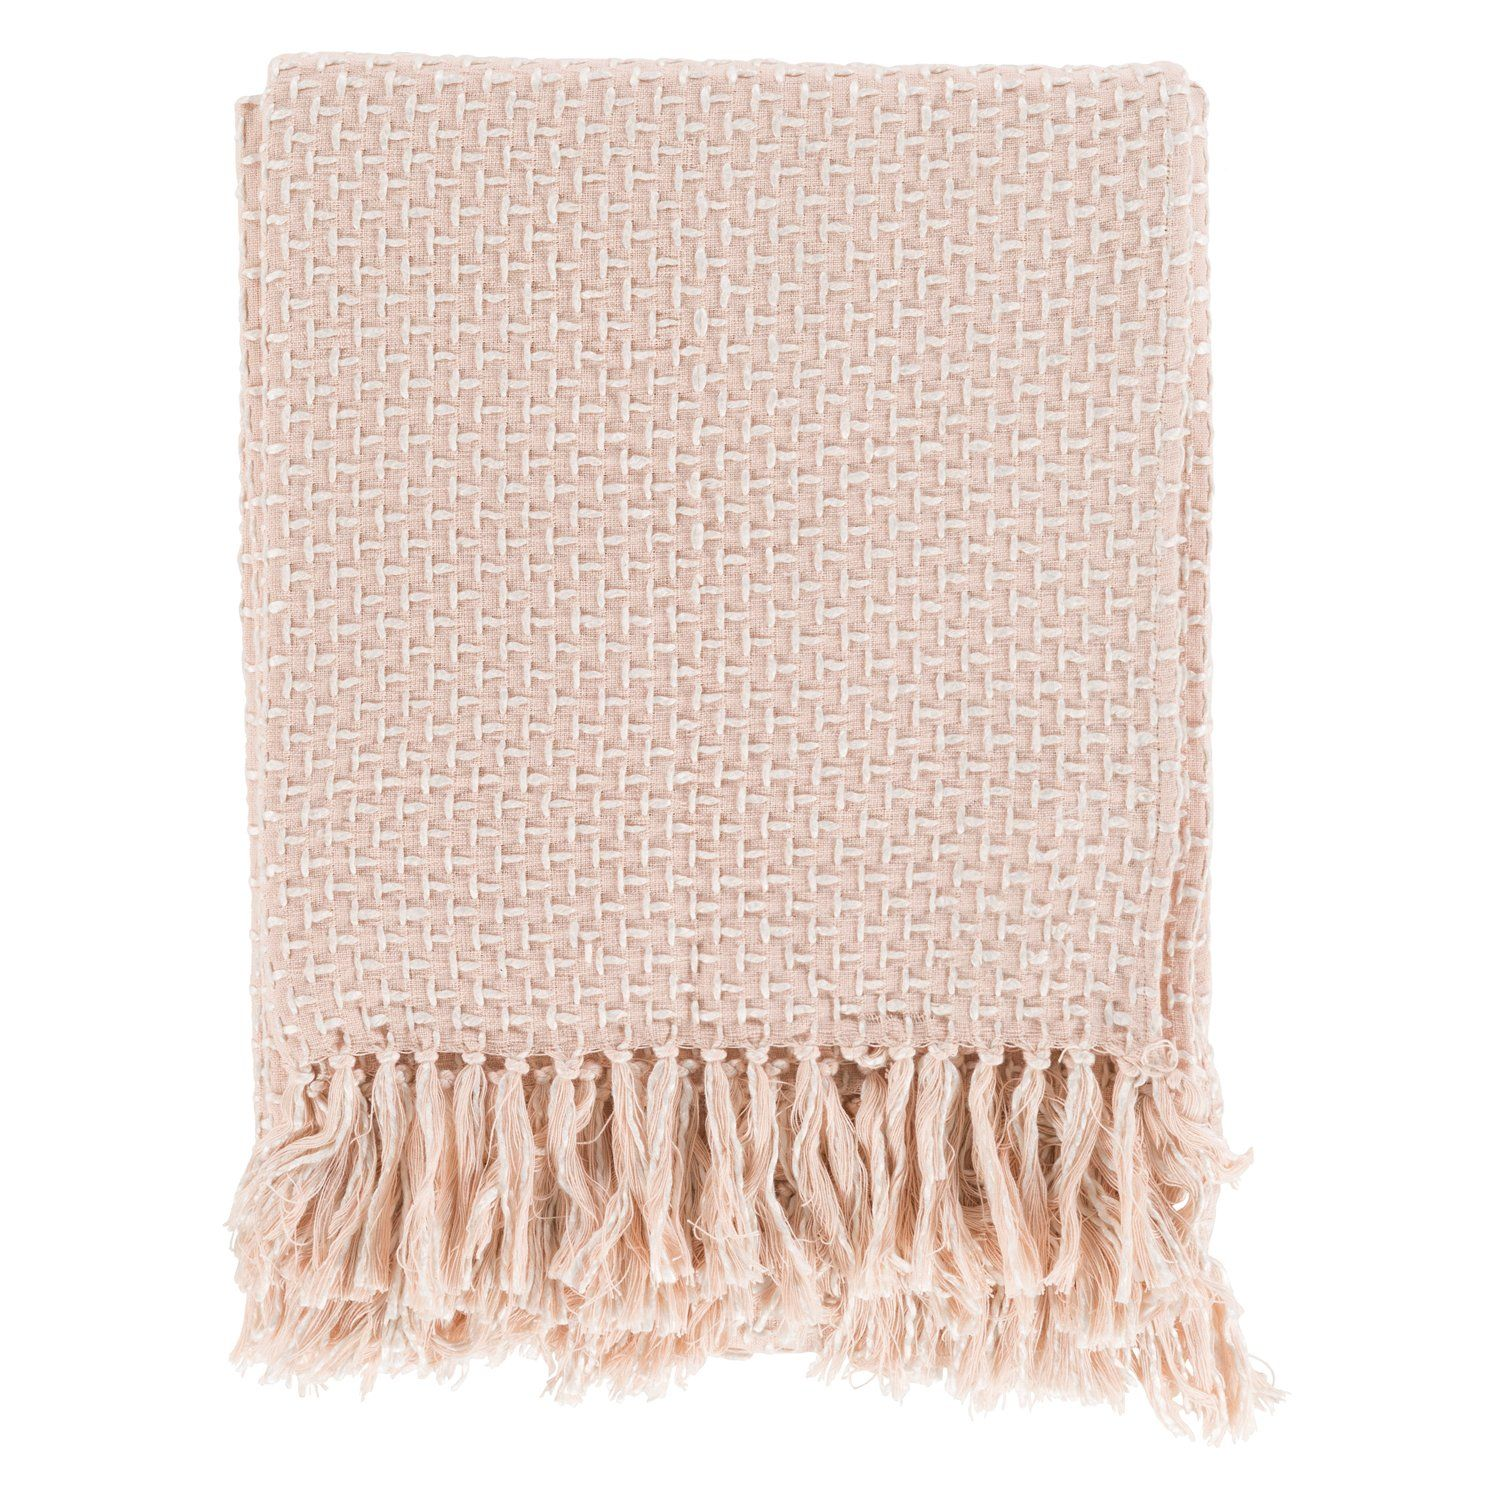 Pink Throws Woven Blankets Throw Baby Blanket Light Bedding